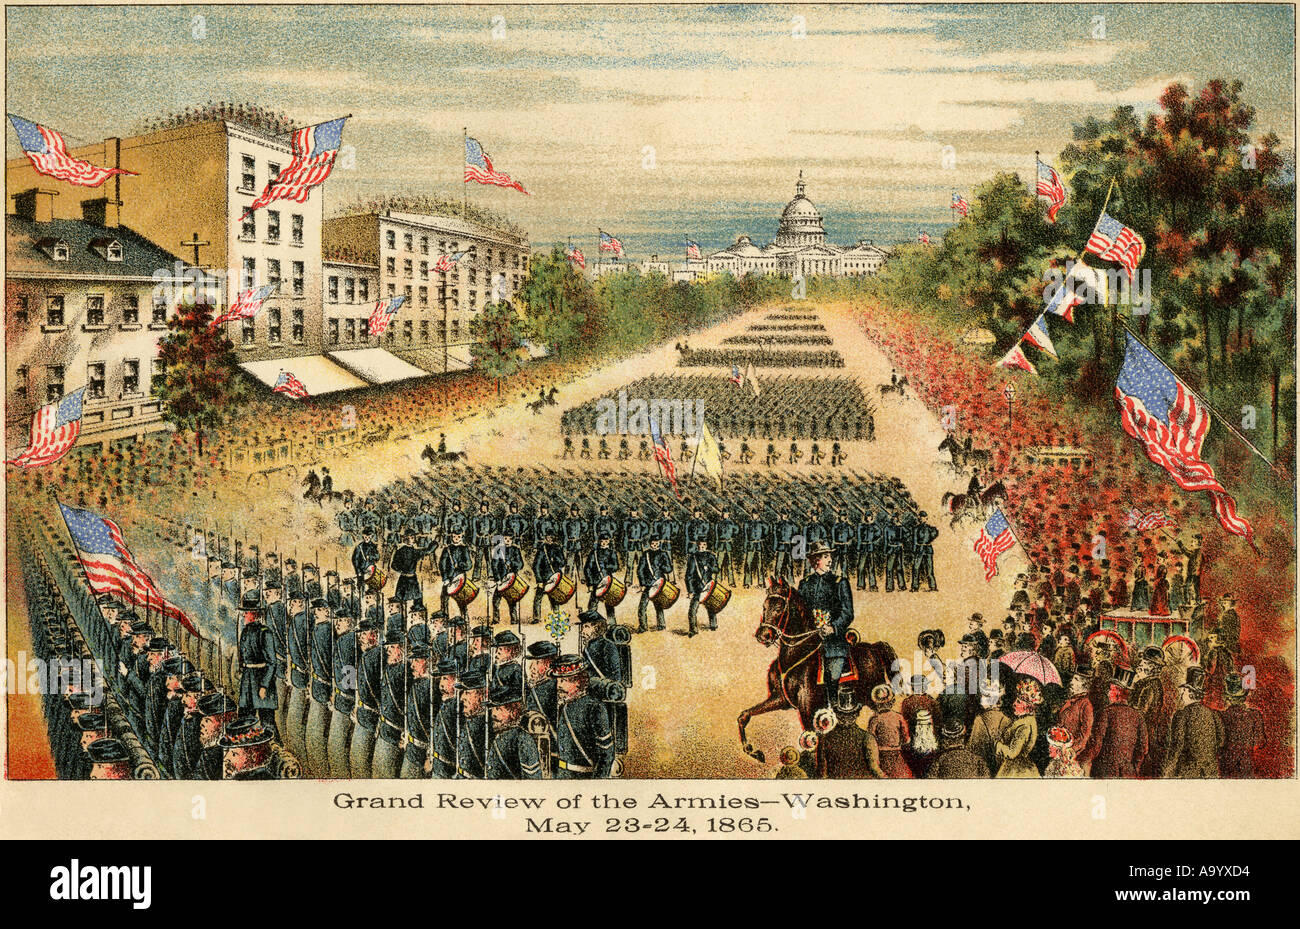 Grand Review of the Armies at the end of the Civil War on Pennsylvania Avenue in Washington DC May 1865. Color lithograph - Stock Image